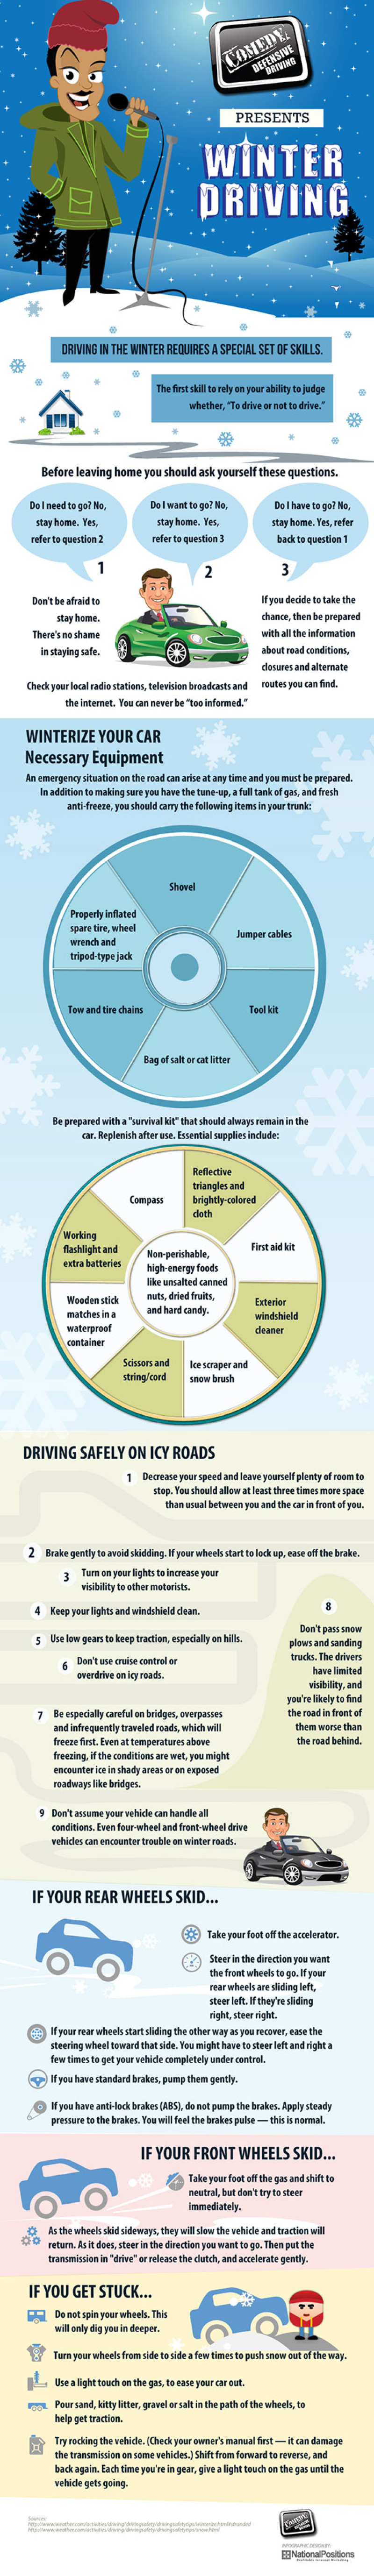 Winter Driving Safety Tips 32 Good Winter Driving Safety Slogans